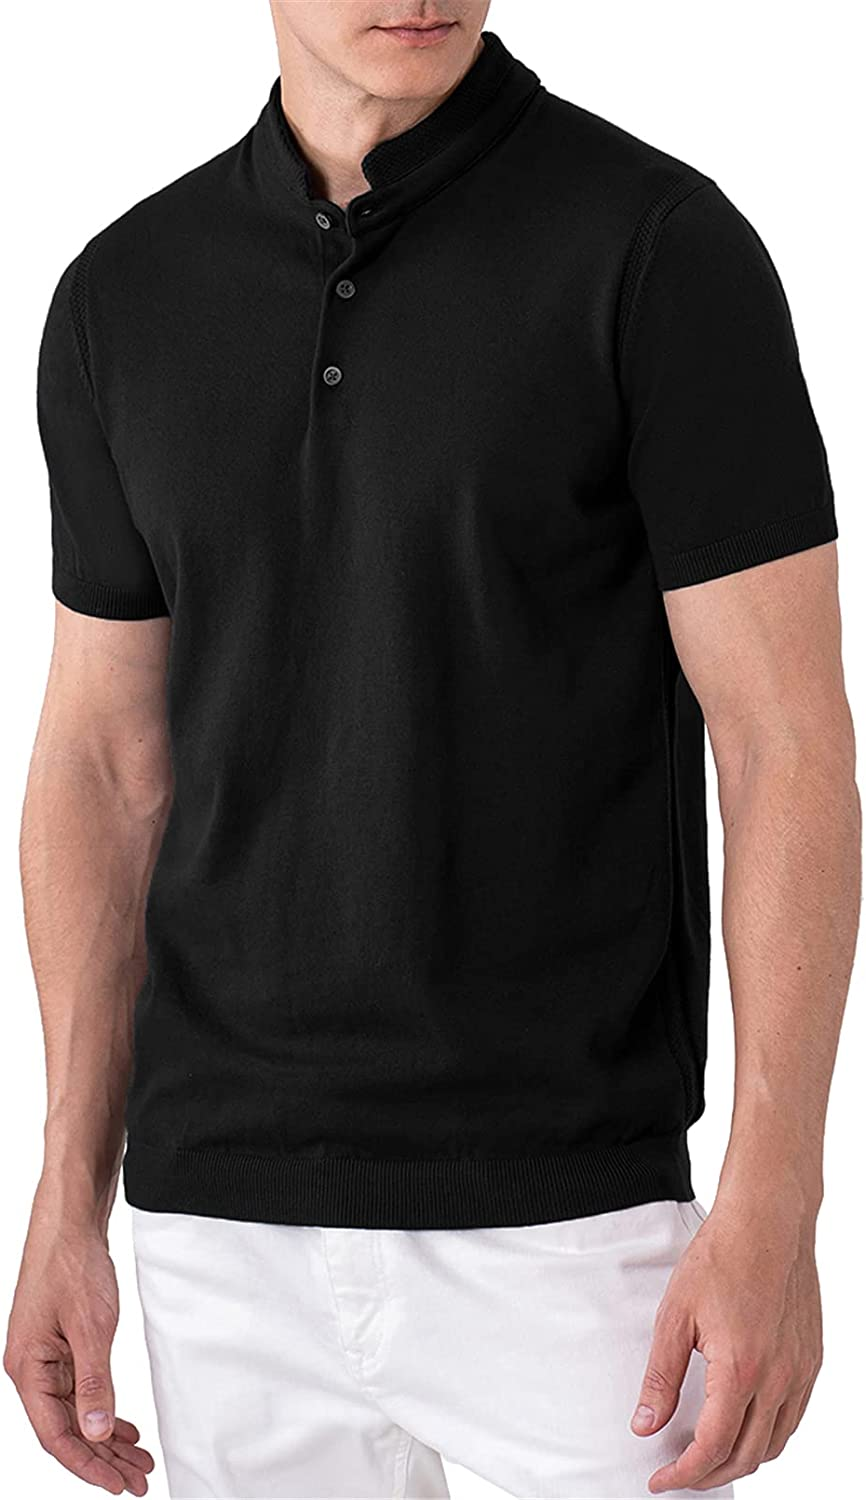 Indefinitely ALTAIREGA Mens Short-Sleeve-Henley-Shirts Max 56% OFF Stand-Up-Collar Knit-P